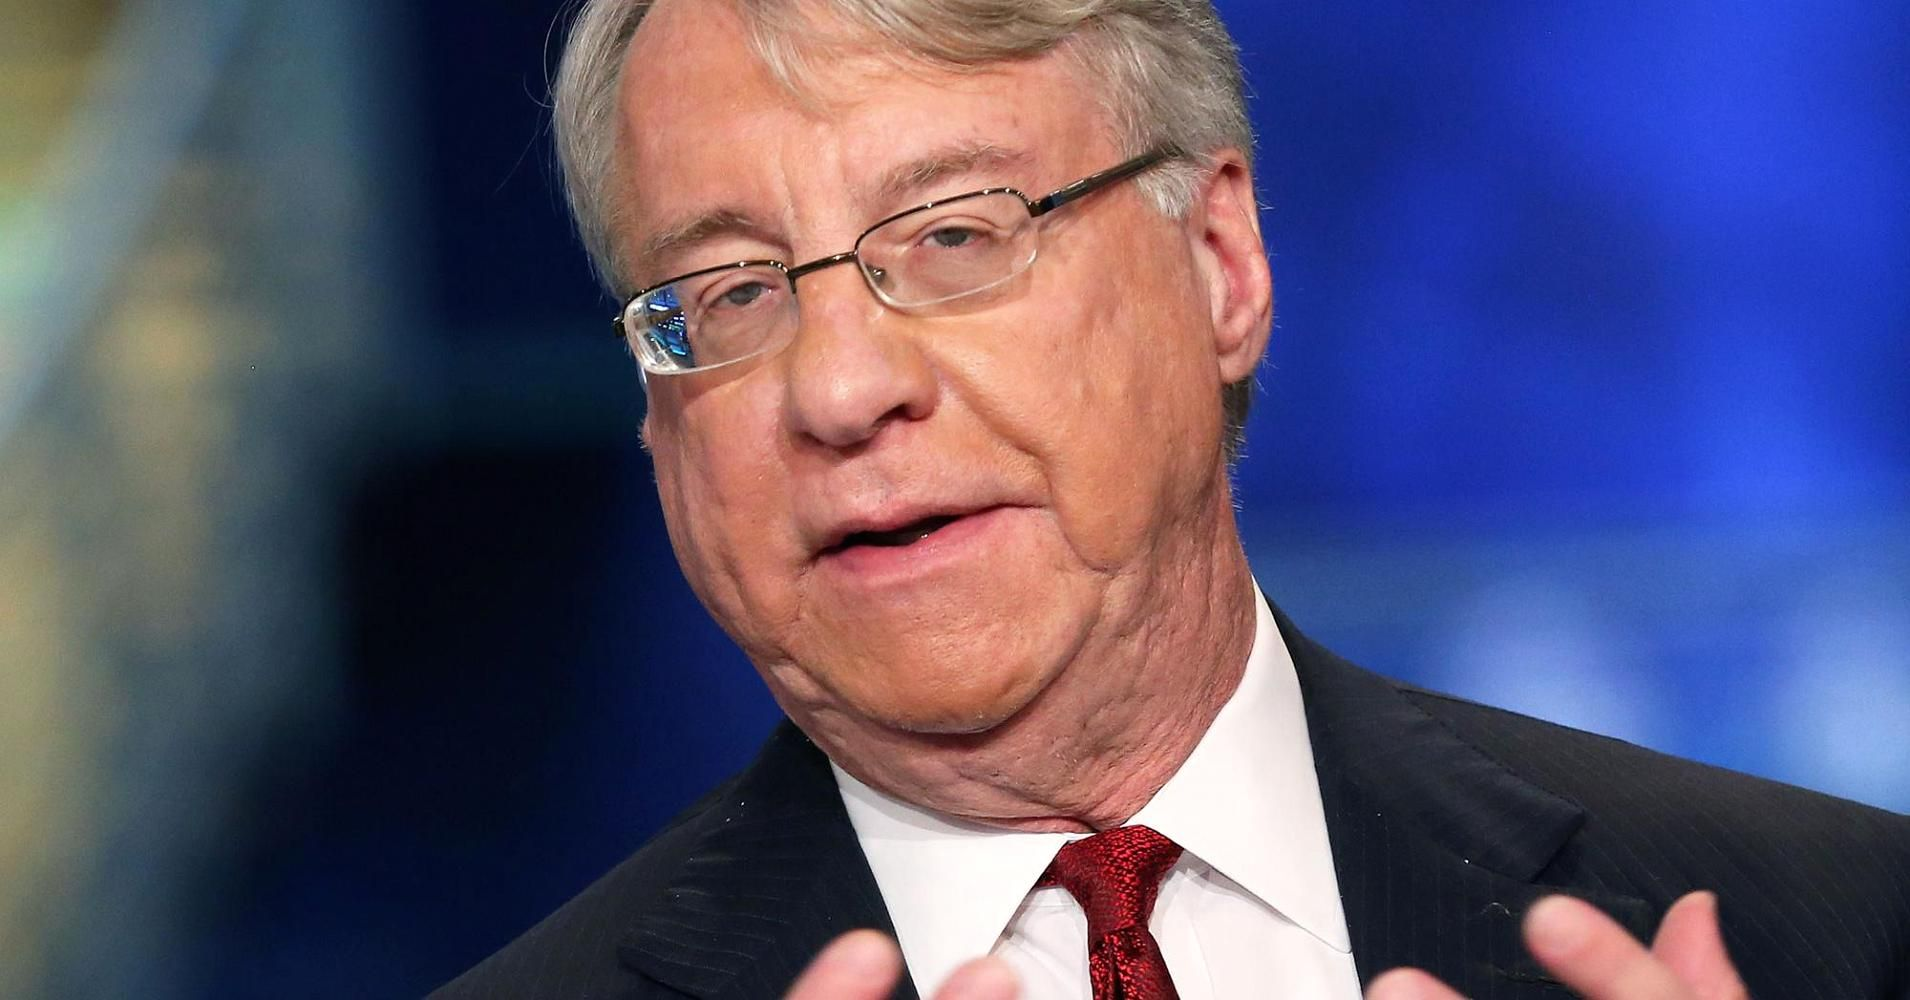 Jim Chanos We consider Tesla is worthy of zero Worthy, Jim